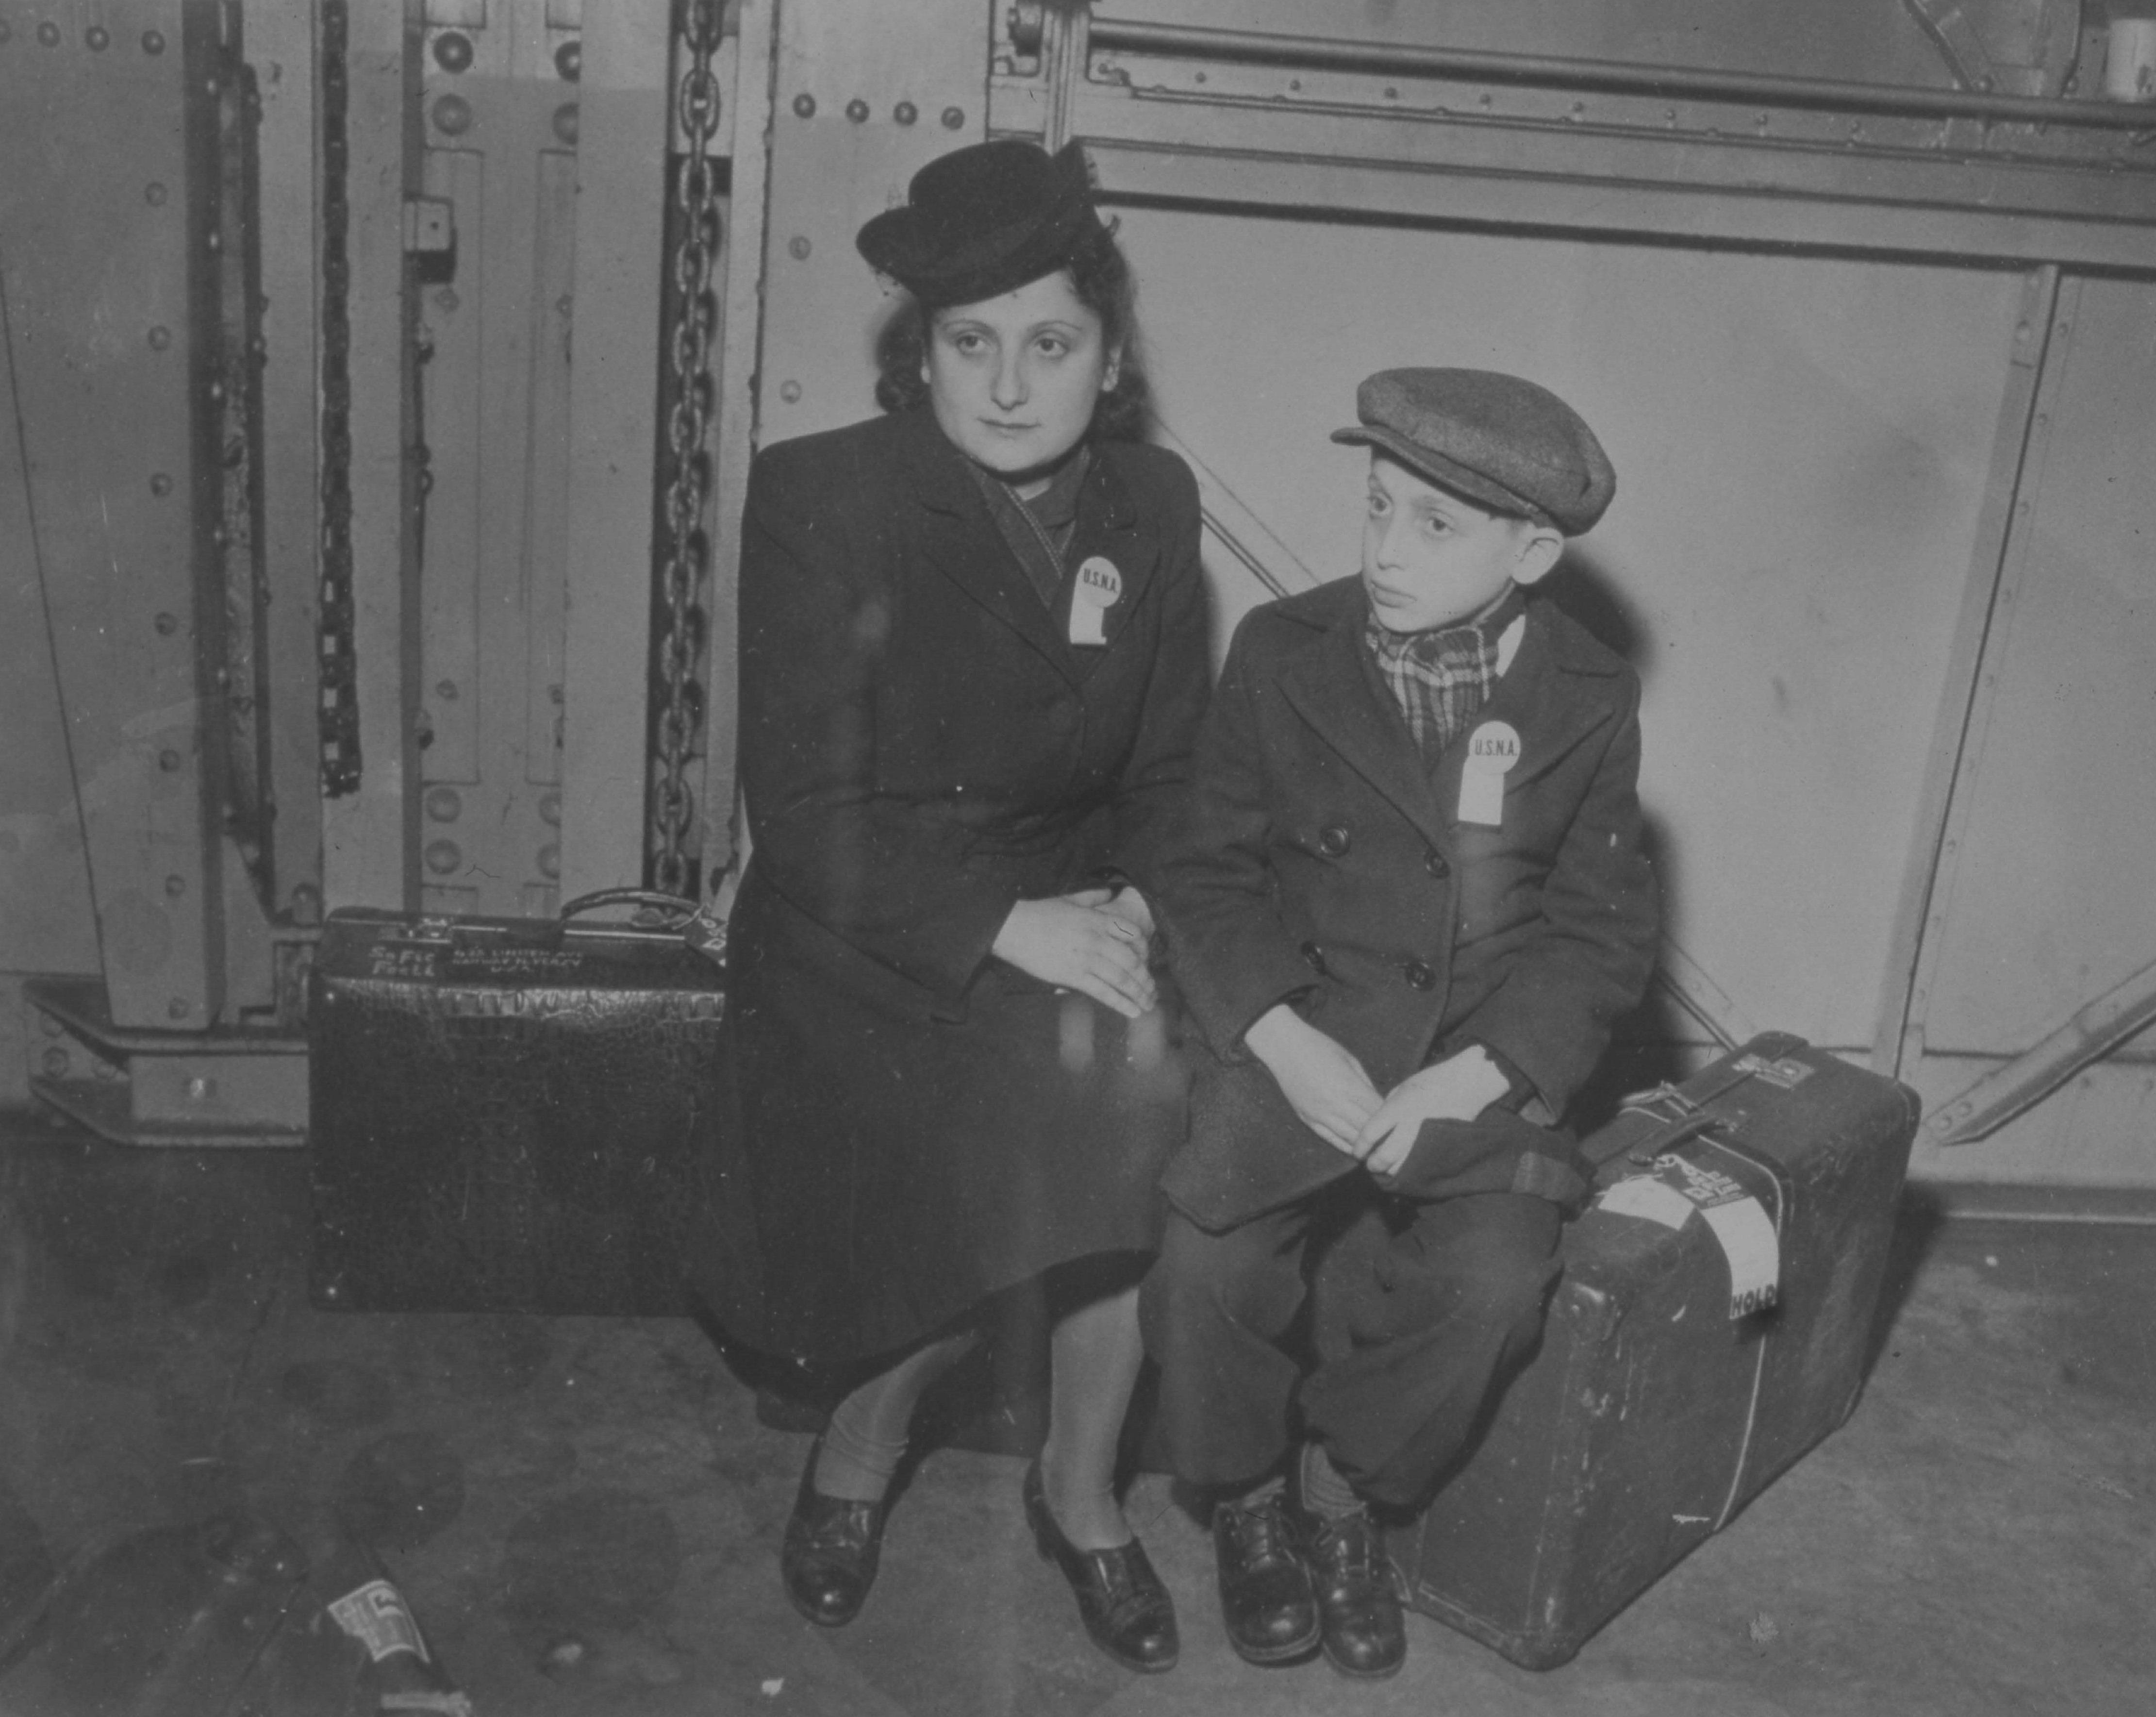 Renee and her brother Michael on a boat to the United States in 1947